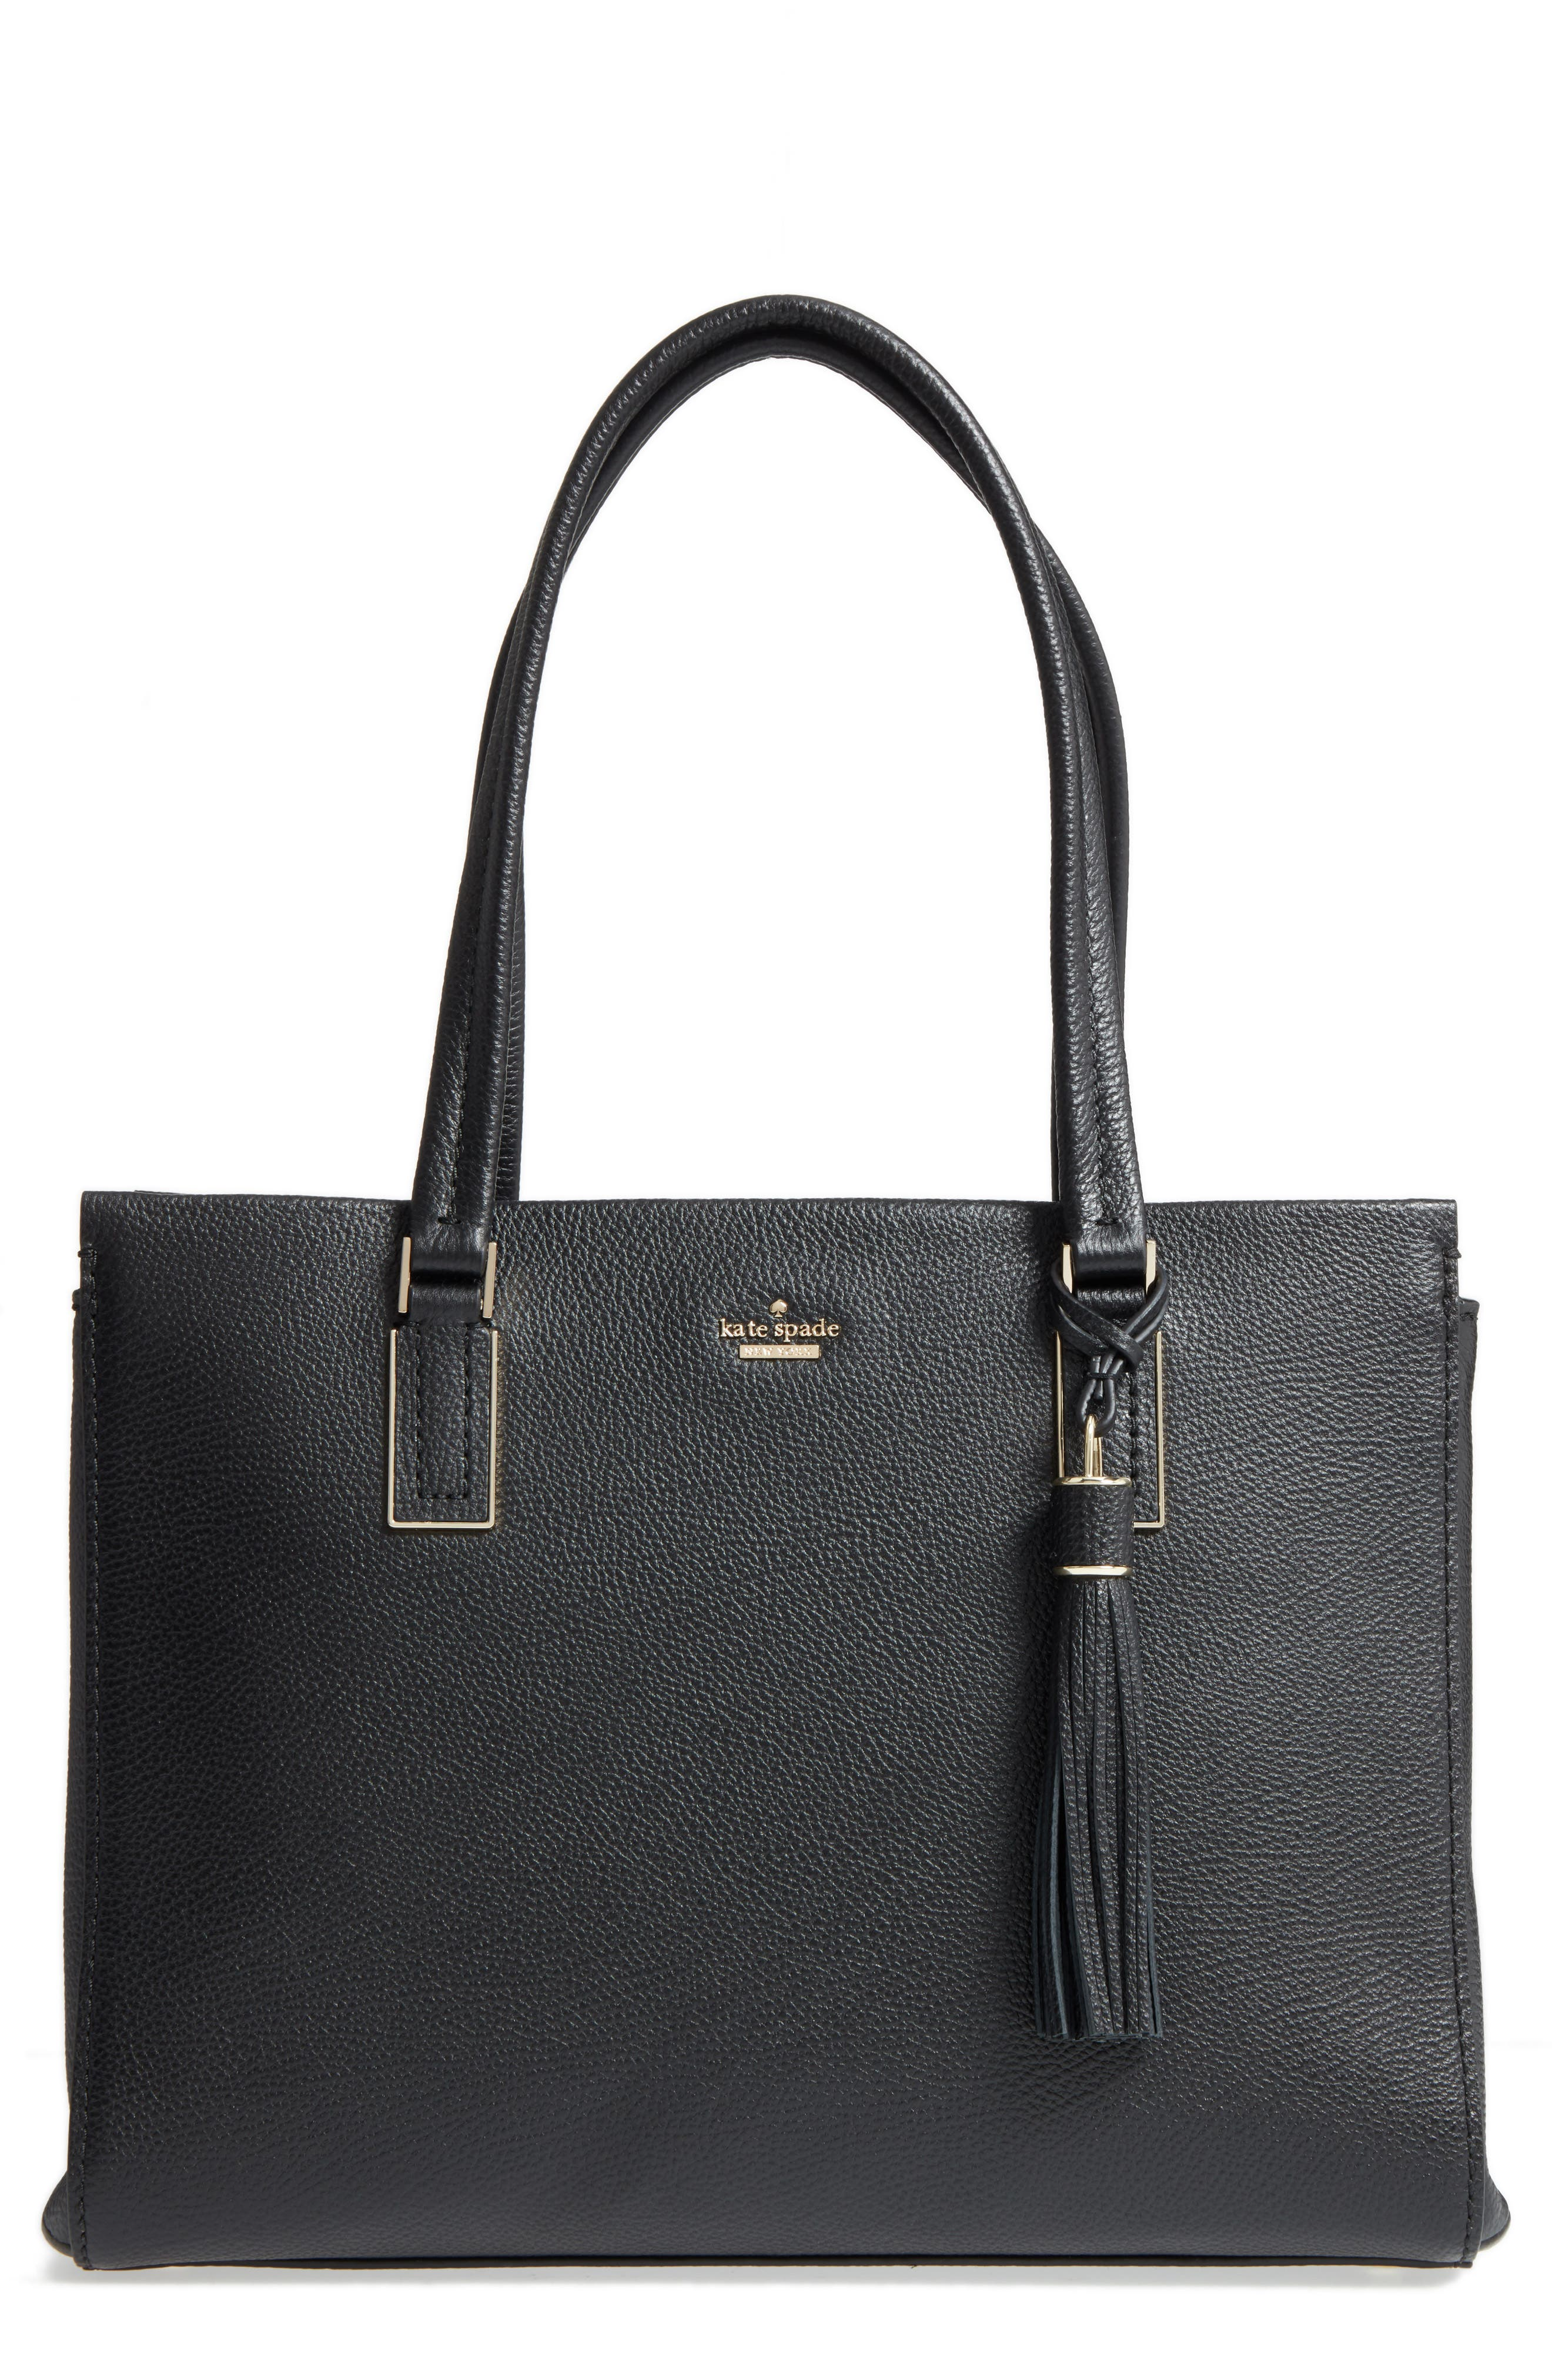 kingston drive - bartlett leather satchel,                         Main,                         color, Black